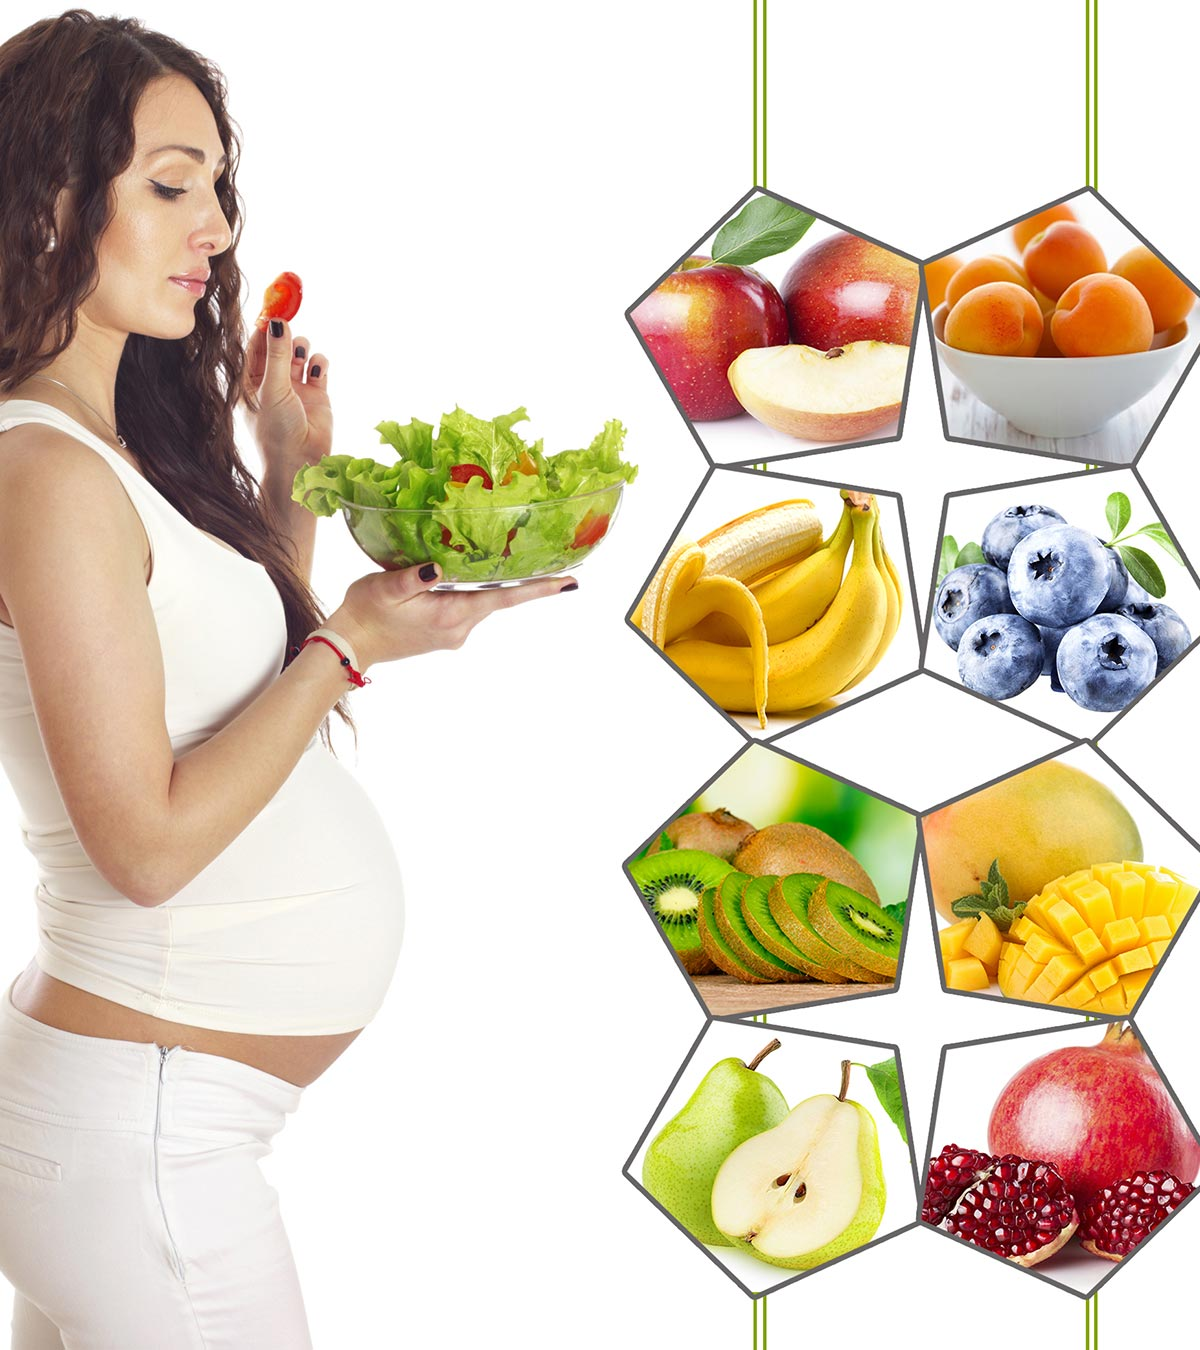 Prenatal Fruit Consumption Boosts >> 24 Nutritious Fruits To Eat During Pregnancy